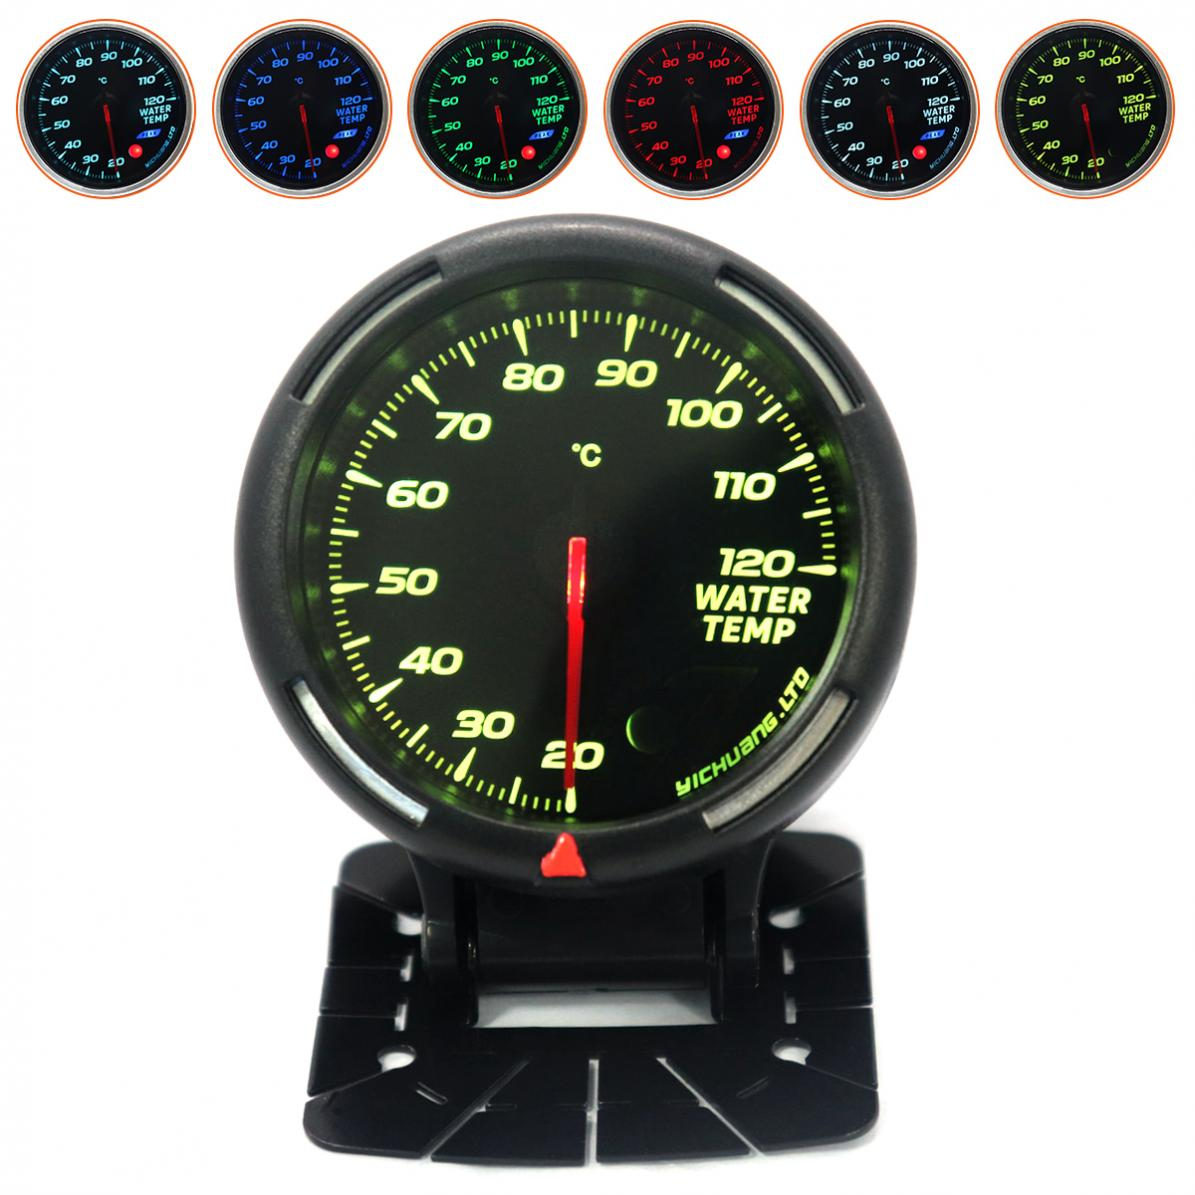 VDO Adapter for Dashboard Instruments 52mm Auf 60mm